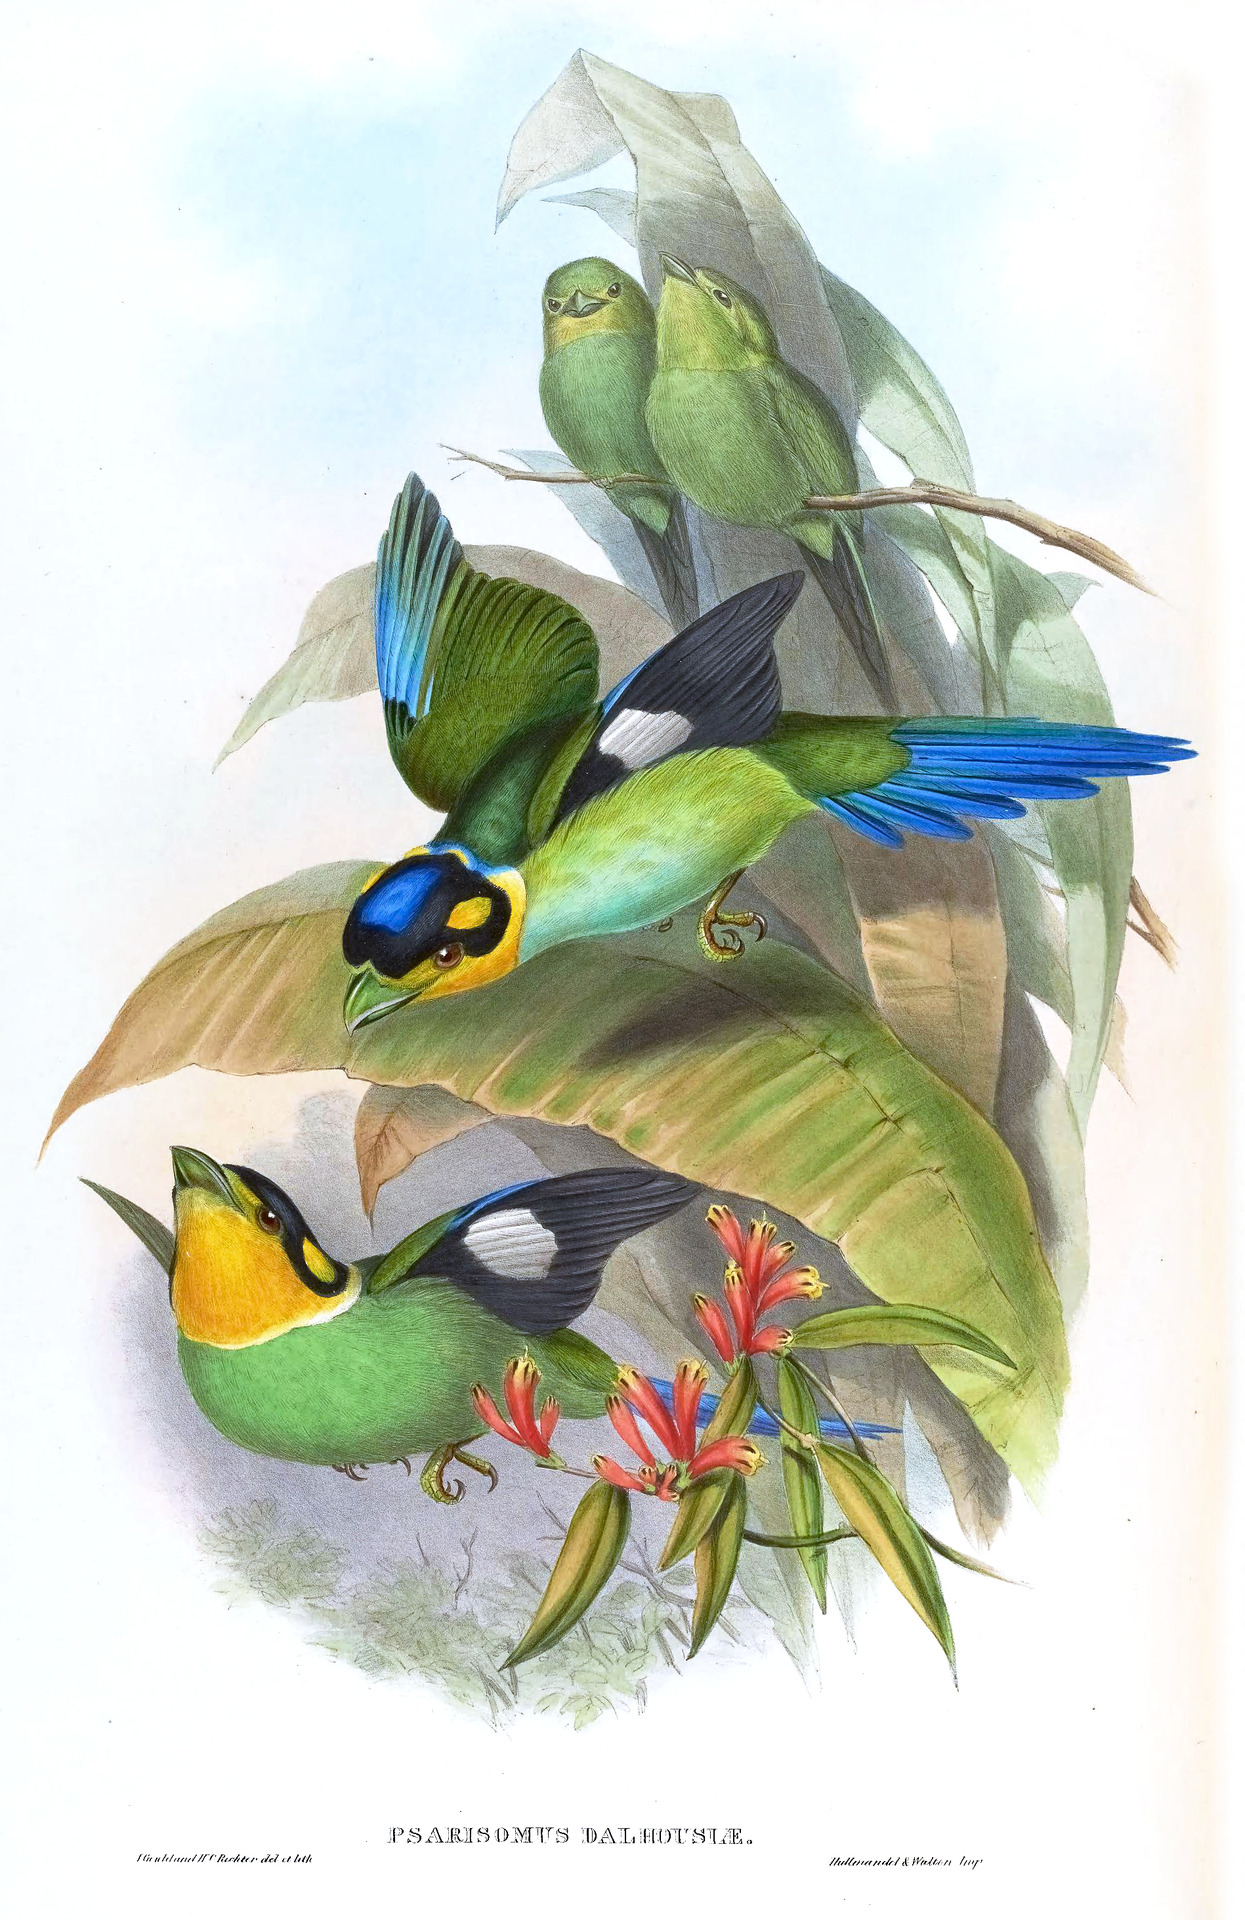 rhamphotheca:  Long-tailed Broadbill, Psarisomus dalhousiae (Jameson) from Birds of Asia, Vol. I, Parts I,-VI, by John Gould, 1850-54. Painted by John Gould & Henry C. Richter